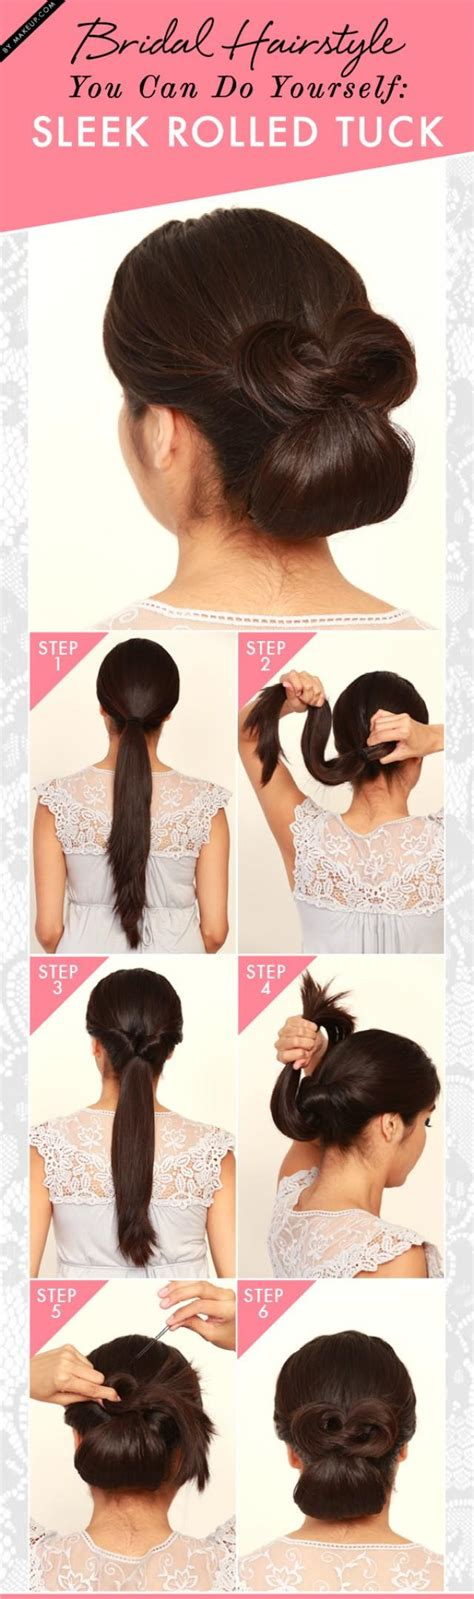 bridal hairstyles you can do yourself bridal hairstyle you can do on yourself sleek rolled tuck